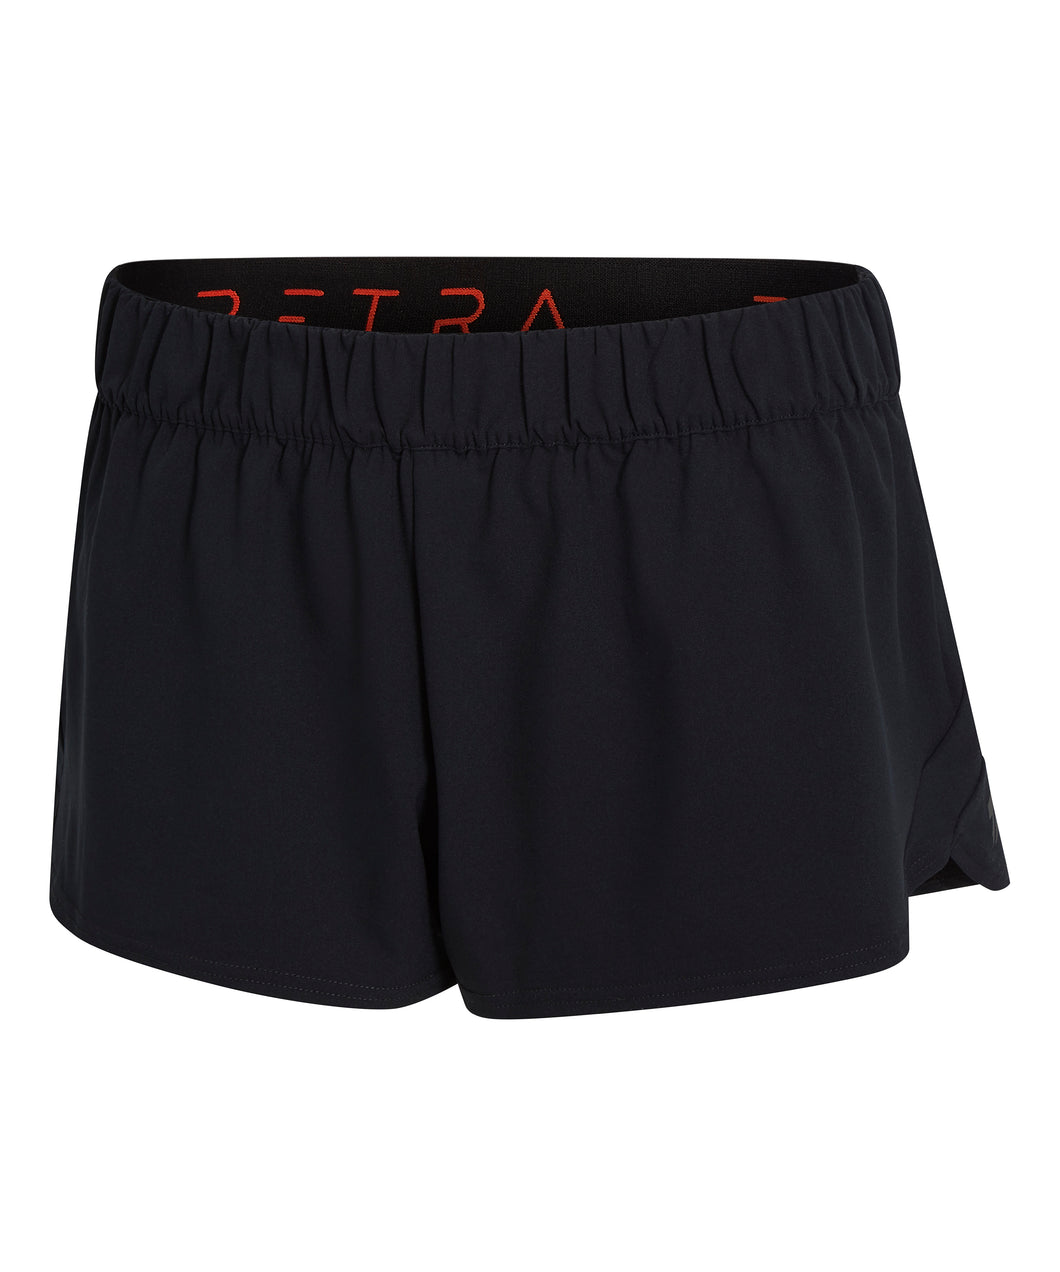 Technical running shorts front view